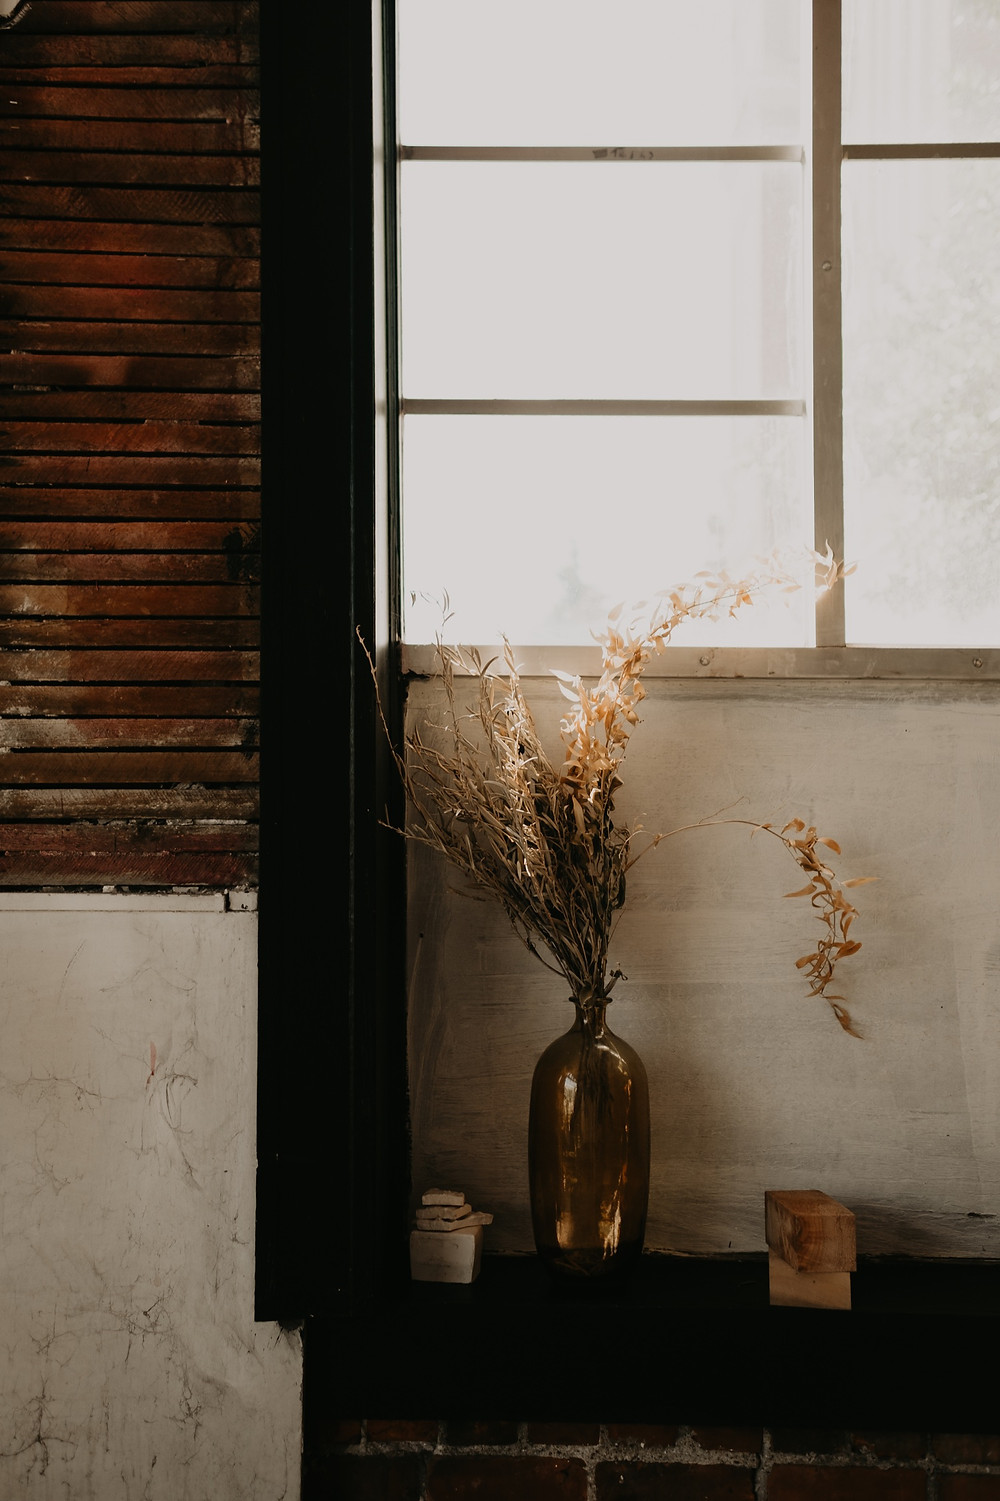 Windowsill with dried floral arrangement at Studio Detroit. Photographed by Nicole Leanne Photography